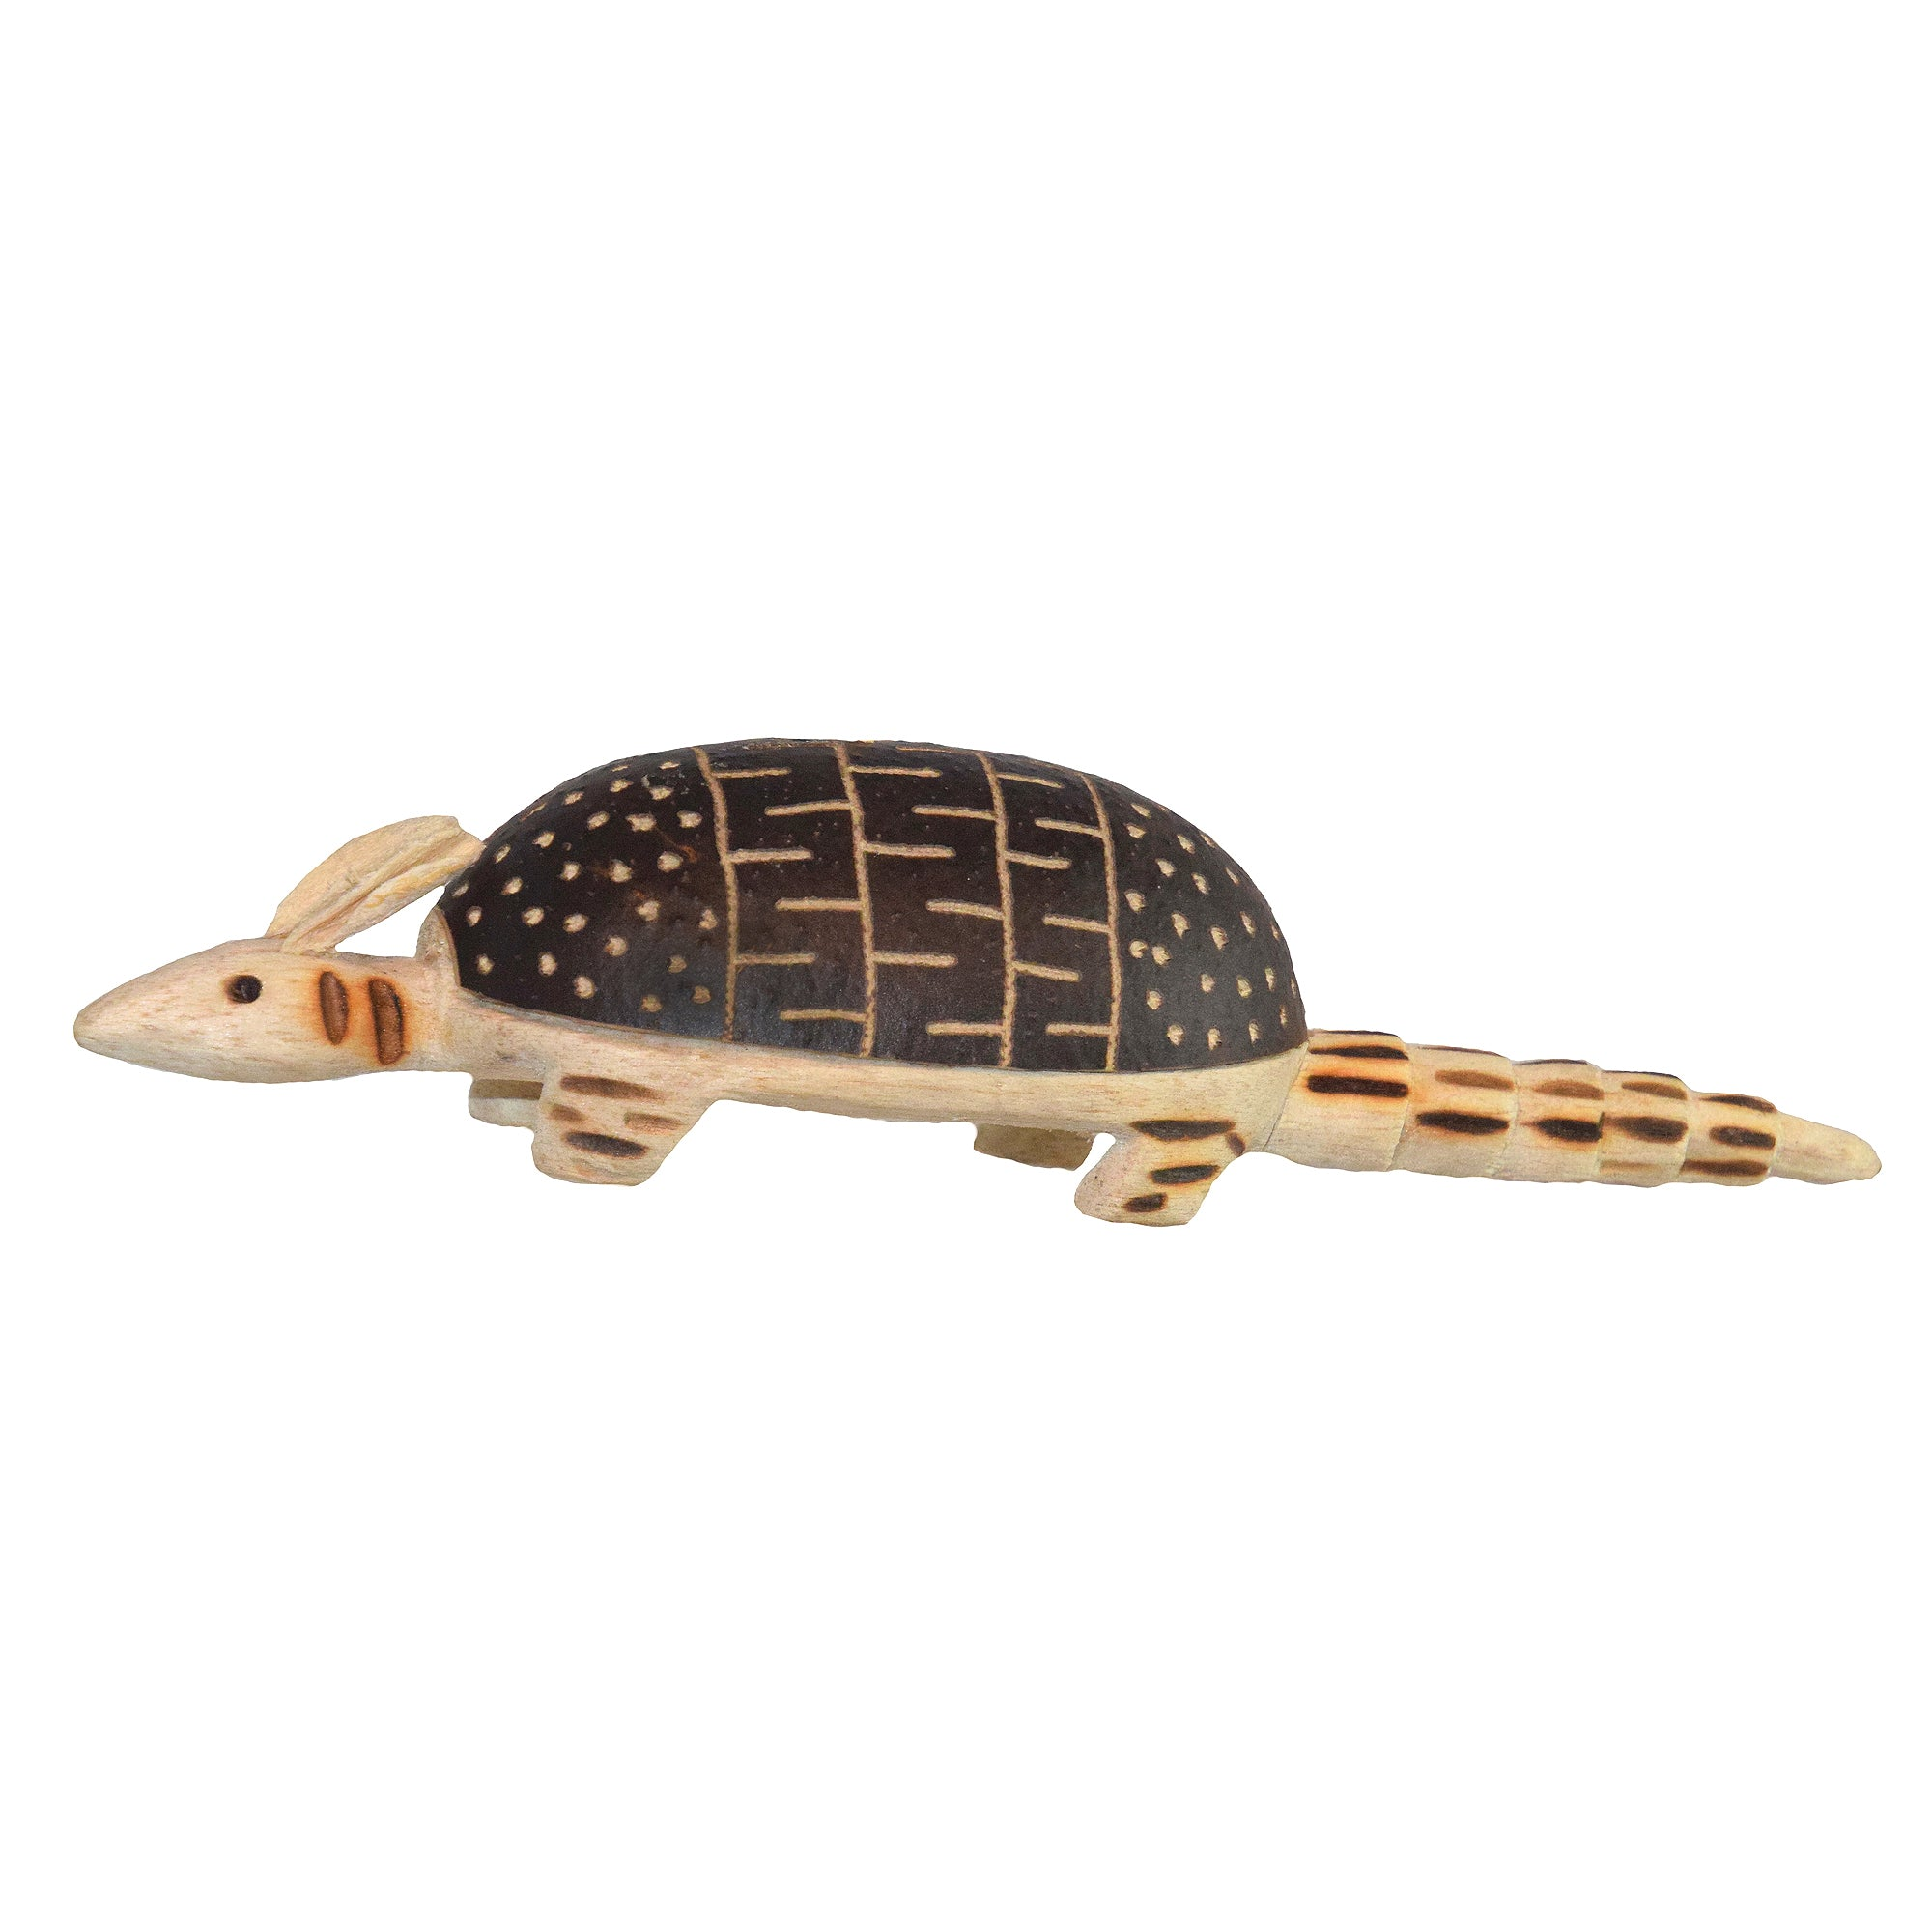 ARMADILLO BALSA WOOD FAIR-TRADE ORNAMENT - CARVED BY PERUVIAN AMAZON ARTISAN